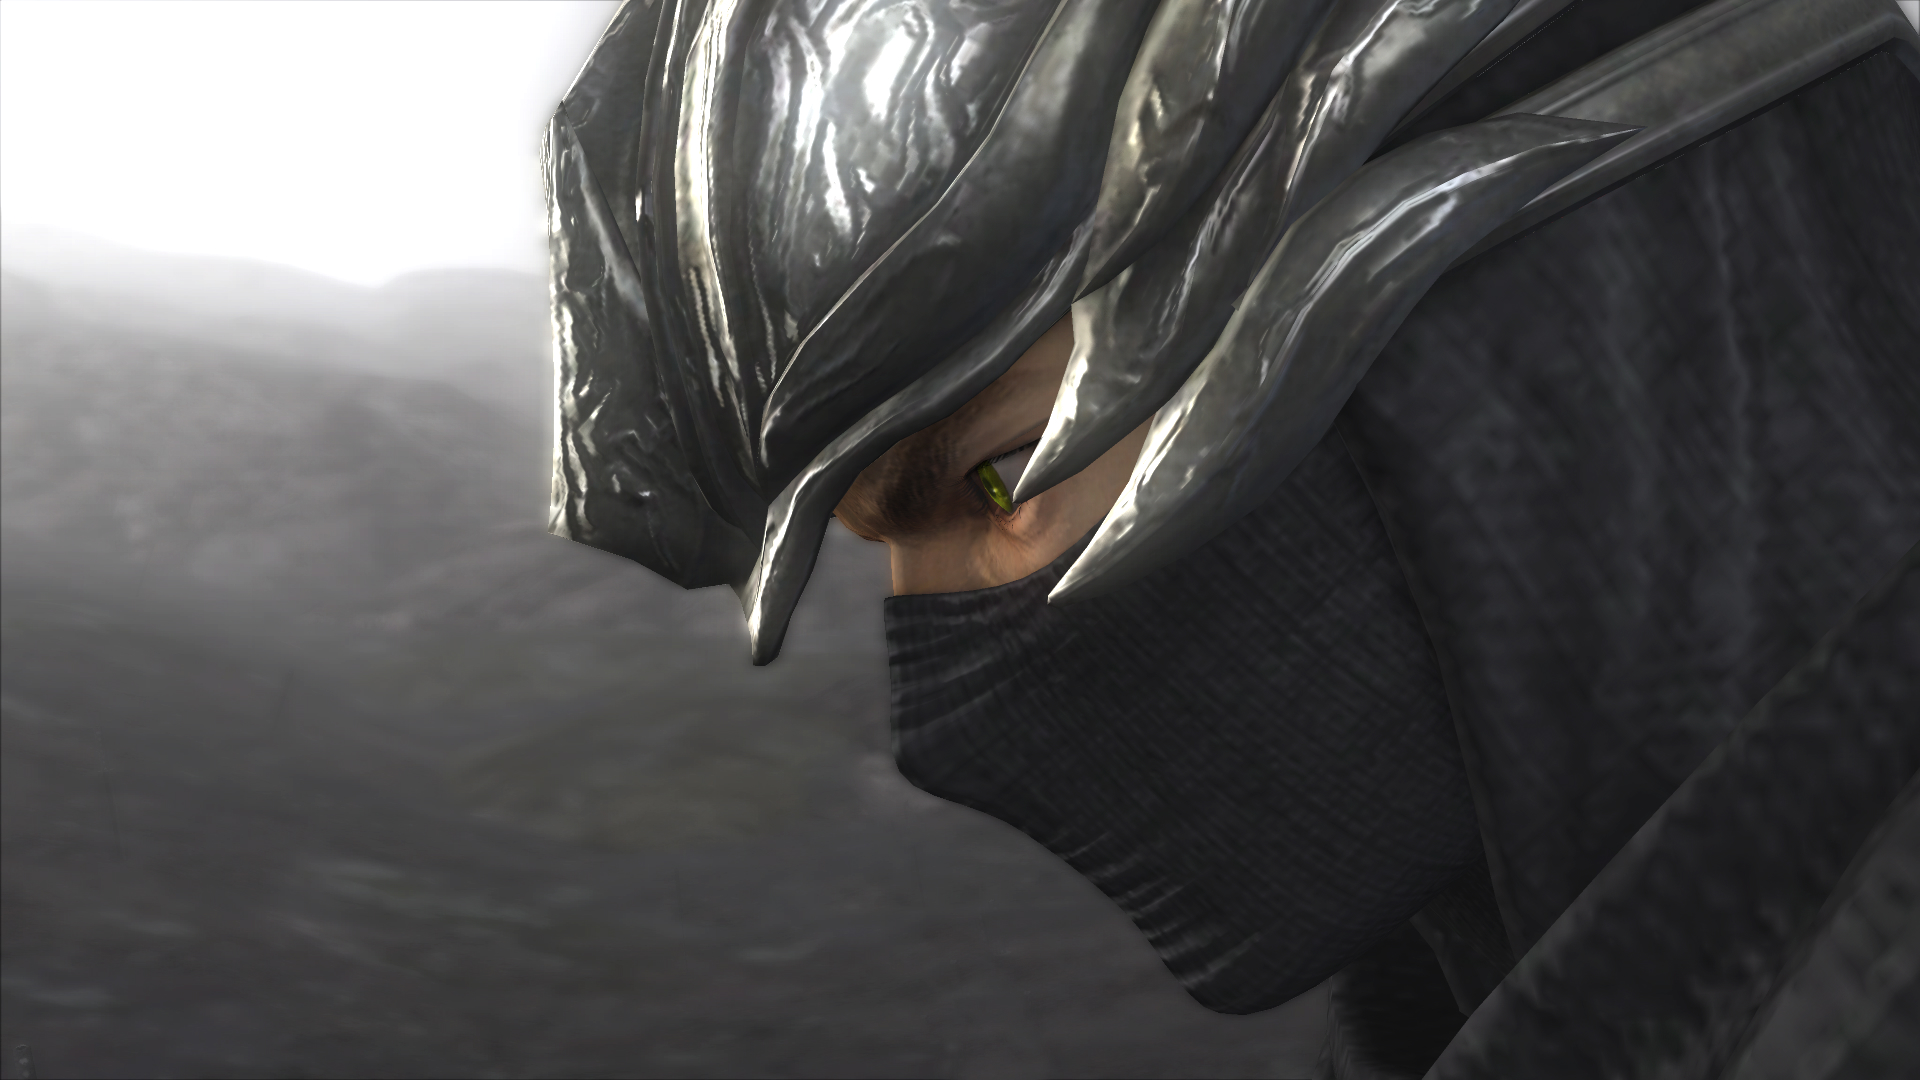 ninja gaiden wallpapers for desktop - photo #19